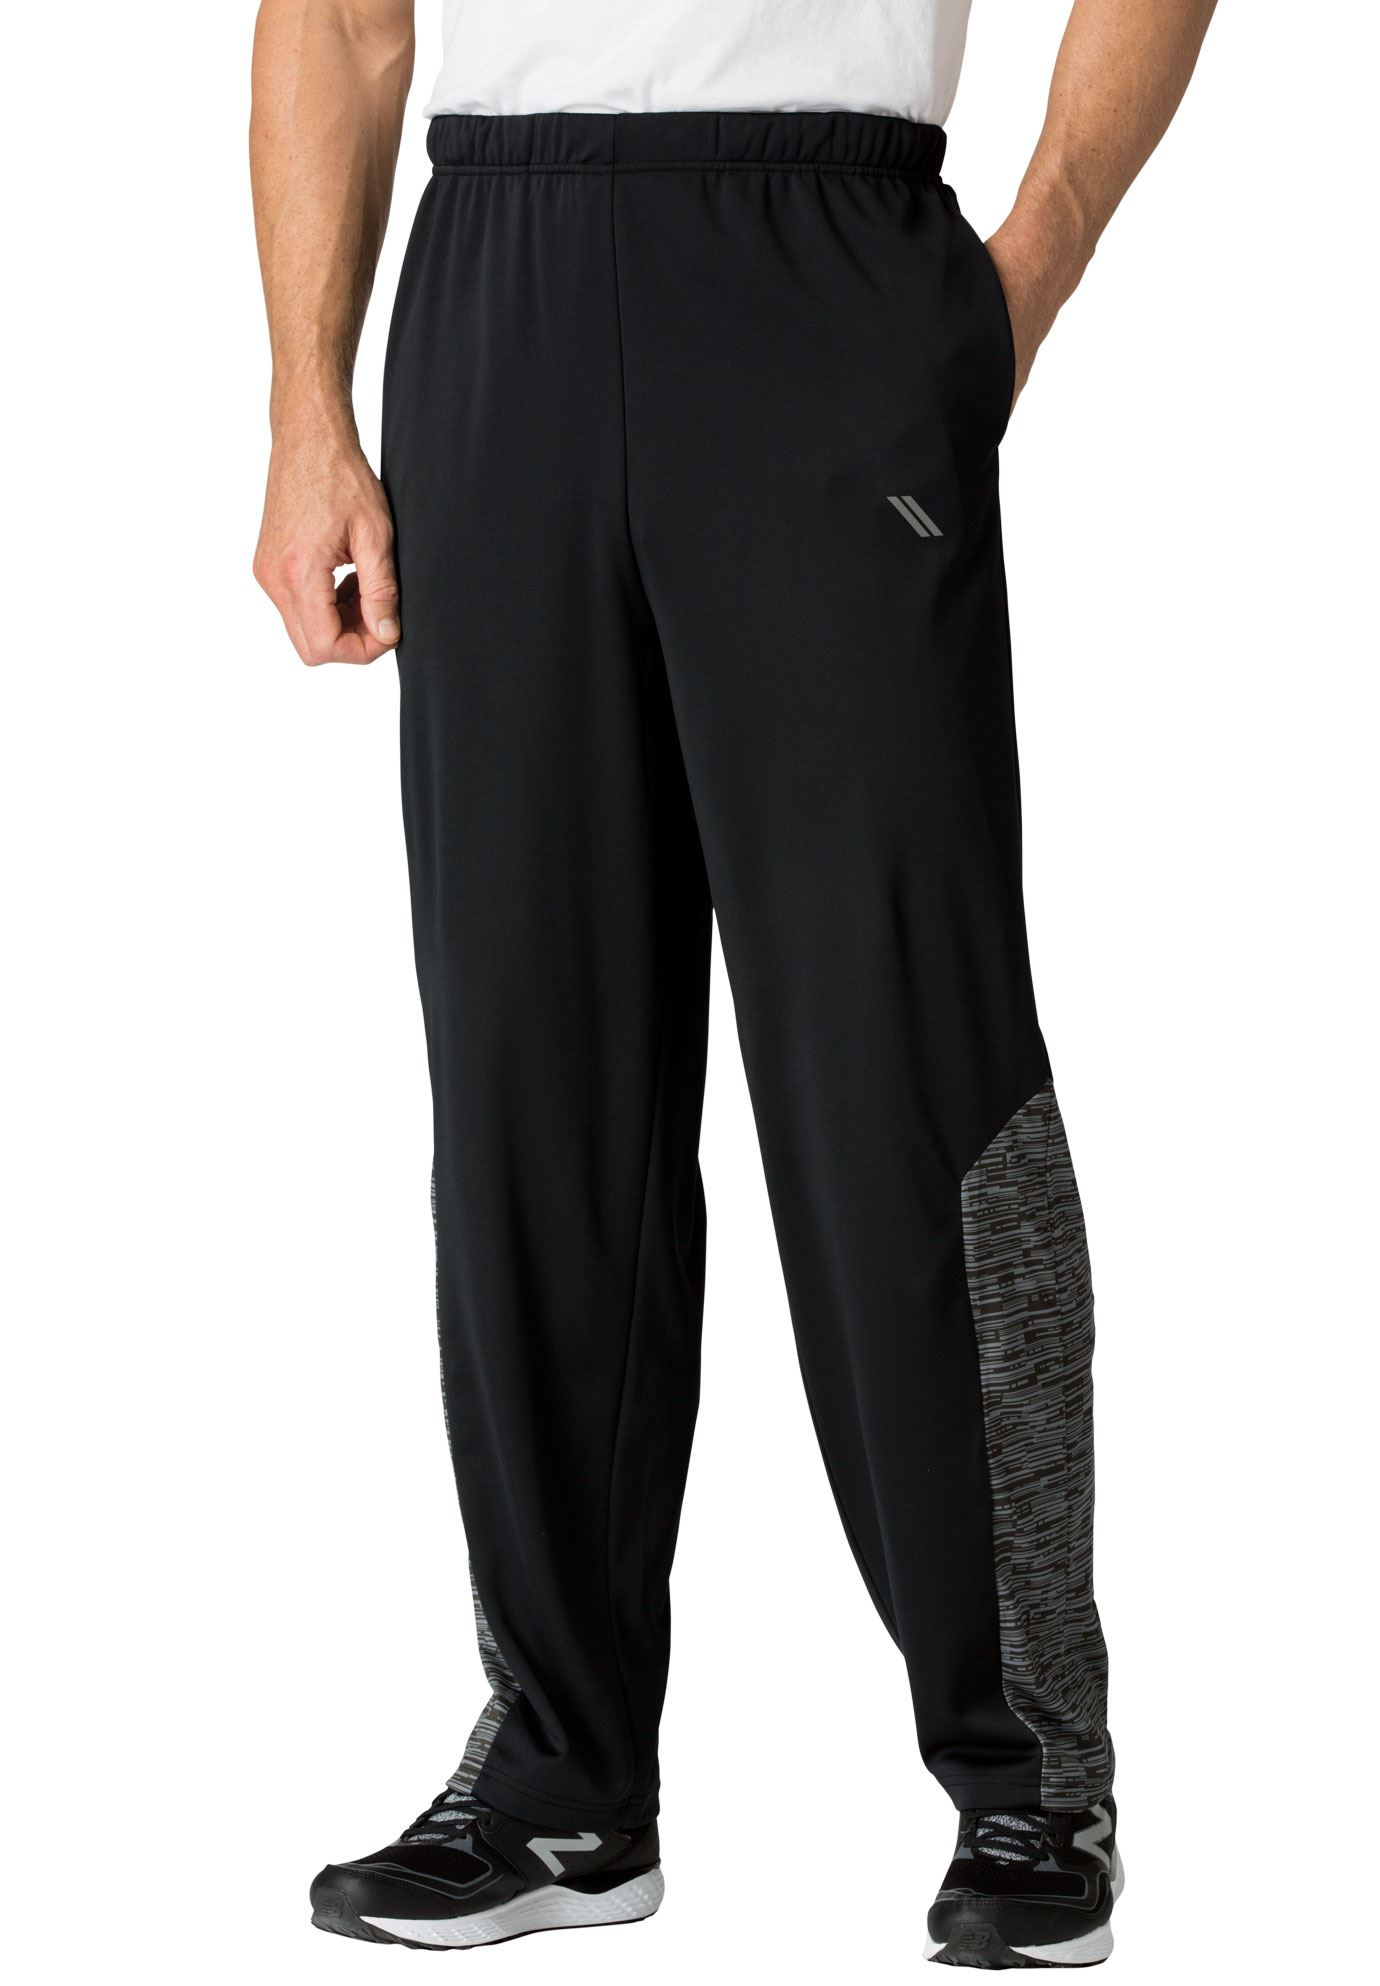 Men's Big & Tall Charger Series Pants By Ks Sport